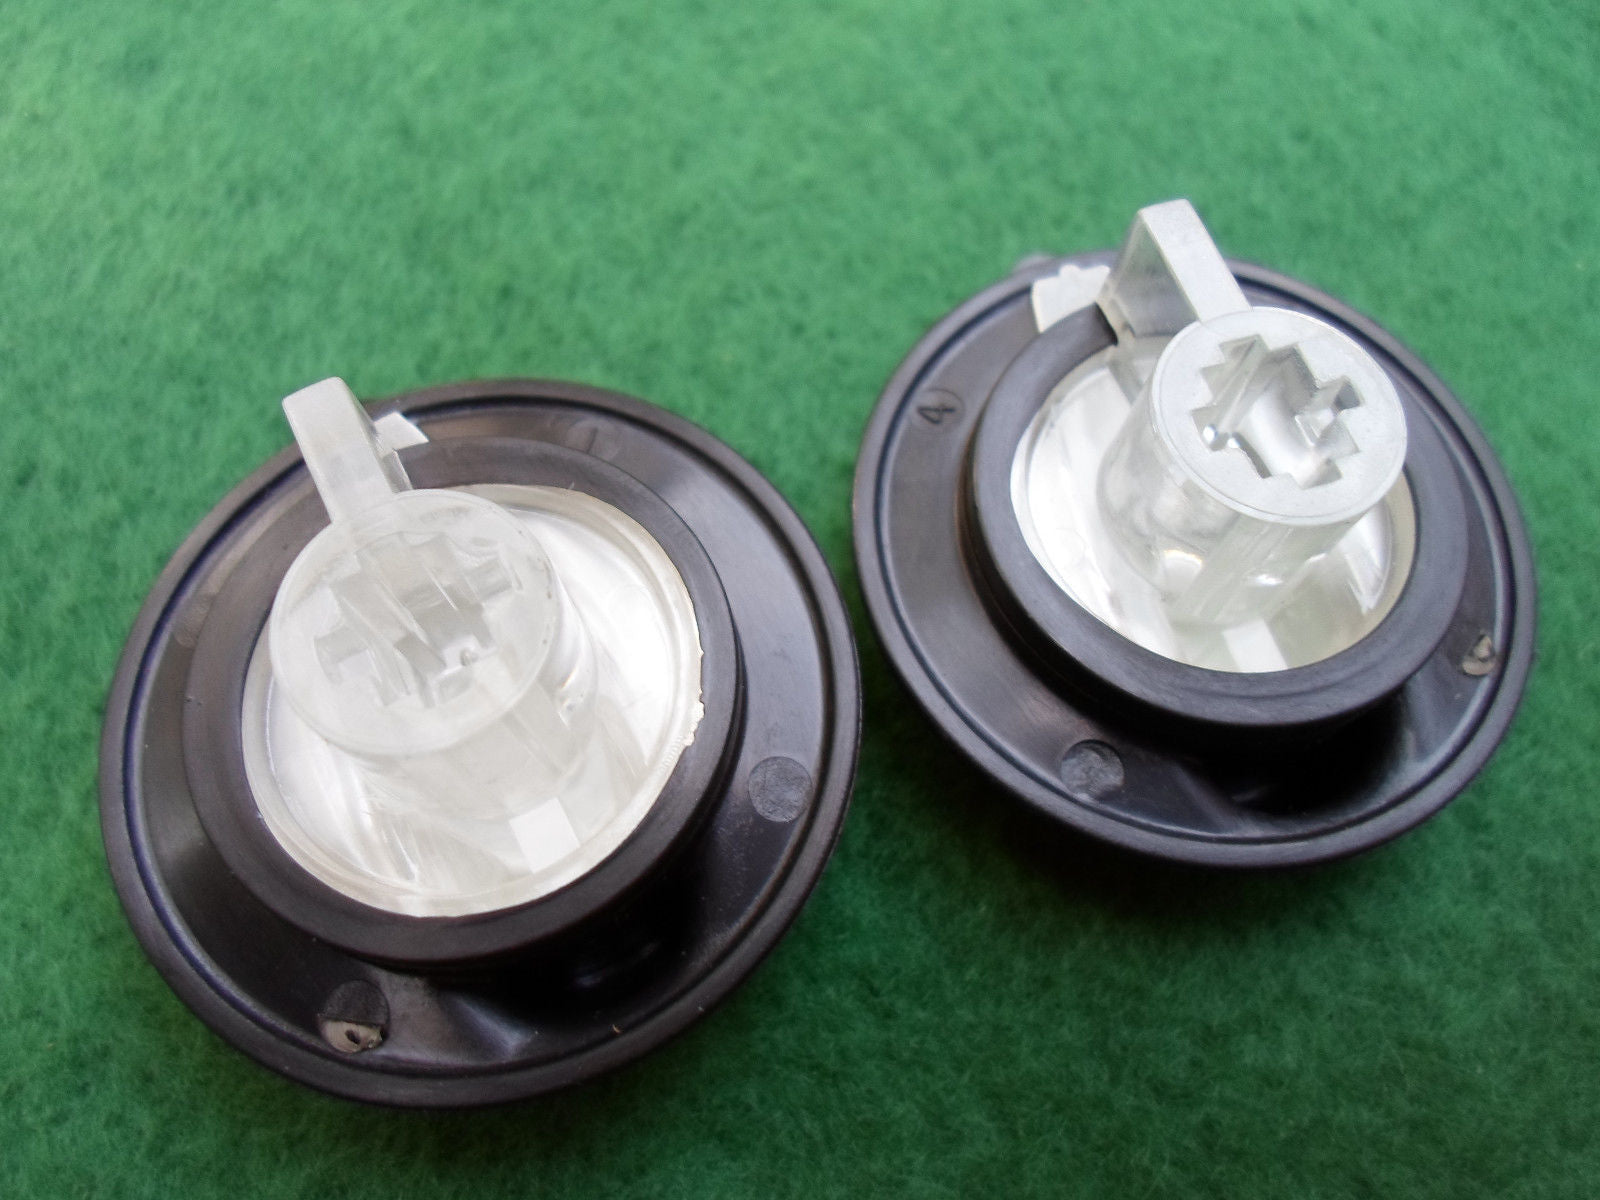 2000 - 2005 SATURN L  SERIES CLIMATE CONTROL KNOB SET OF  2  OEM FREE SHIPPING!